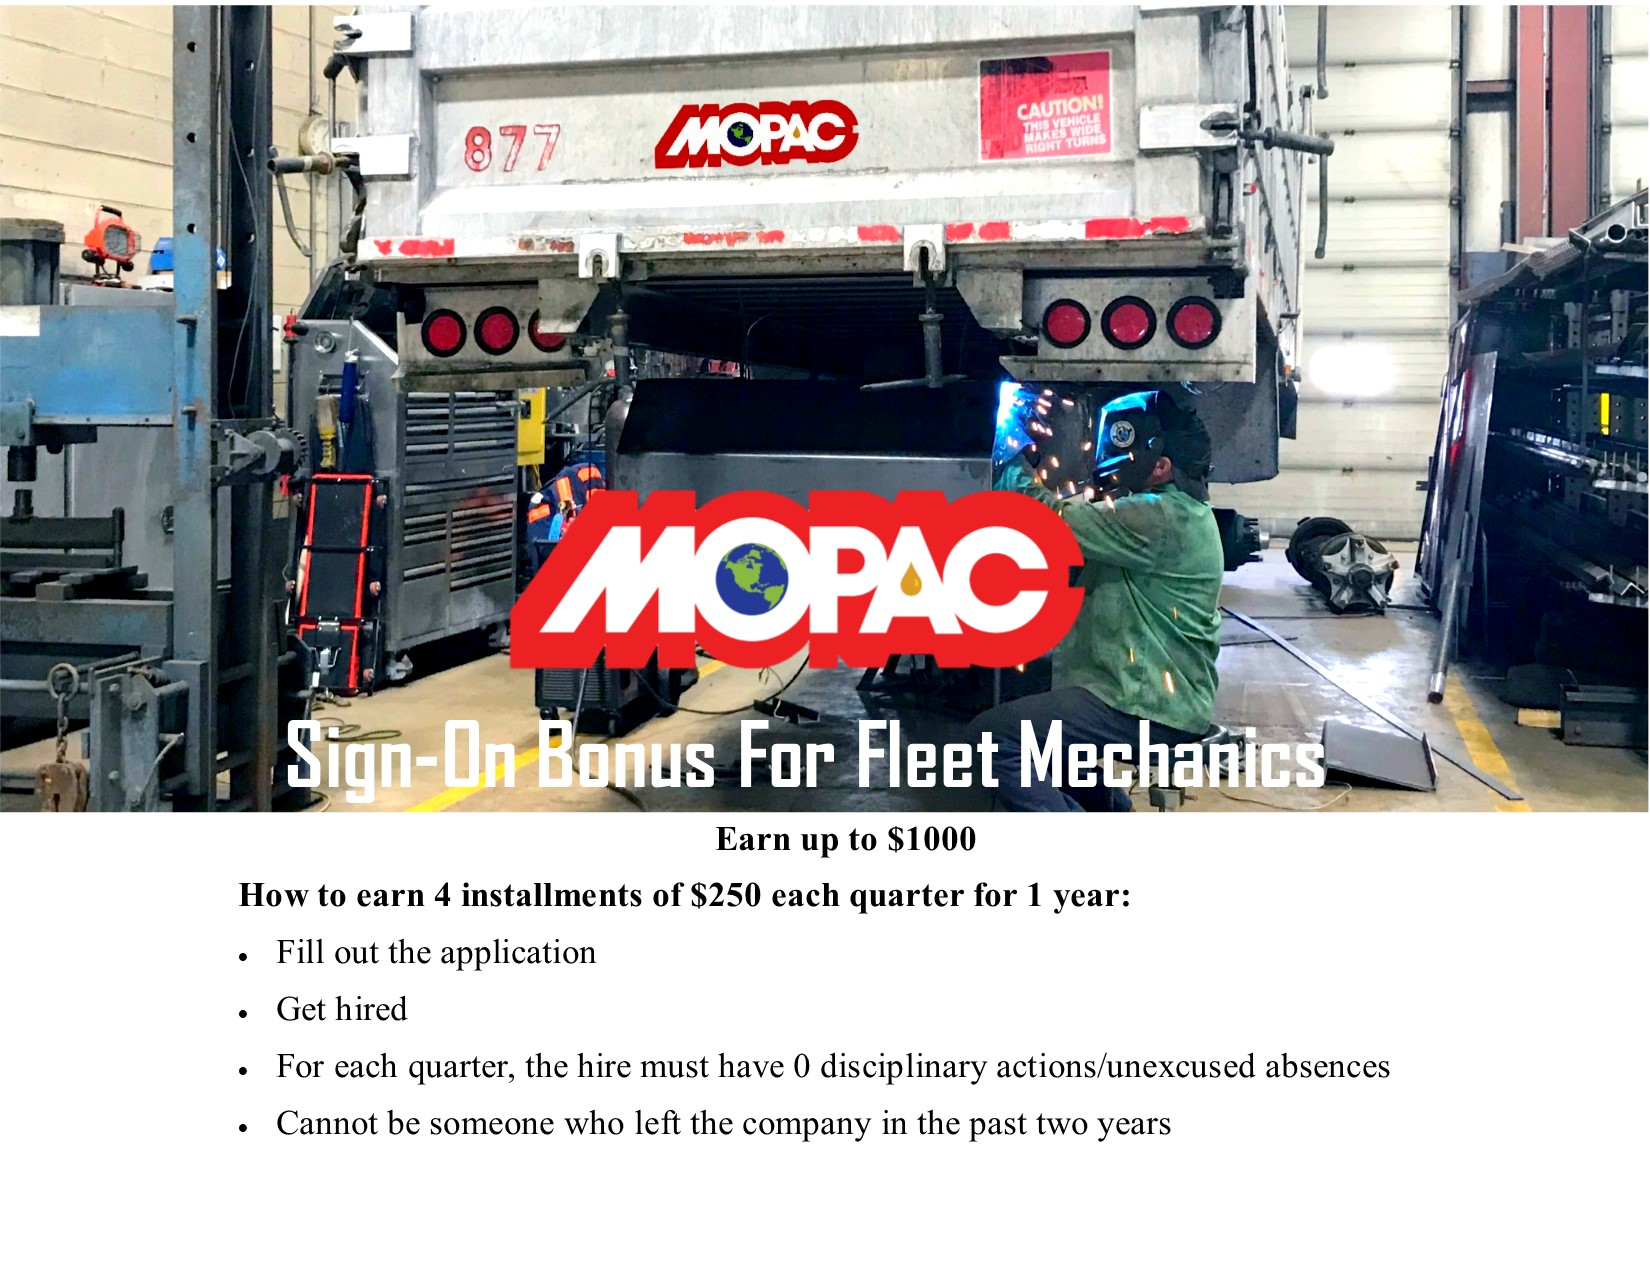 MOPAC Diesel Mechanic Job Sign On Bonus